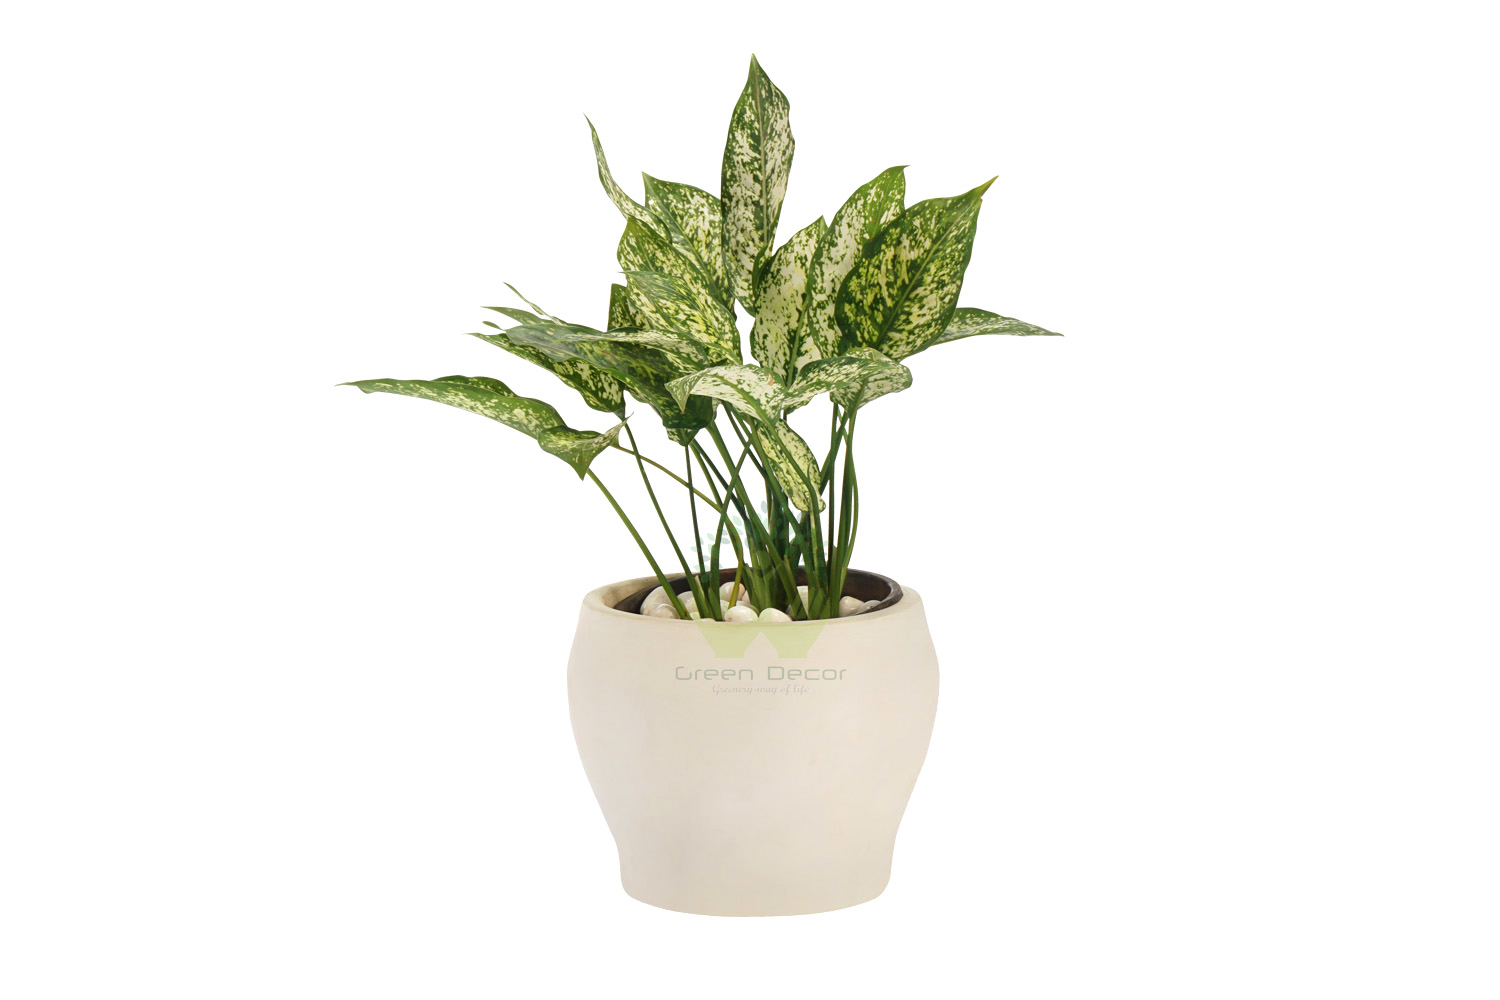 Buy Agloanema White Plants Front VIew, White Pots and seeds in Delhi NCR by the best online nursery shop Greendecor.